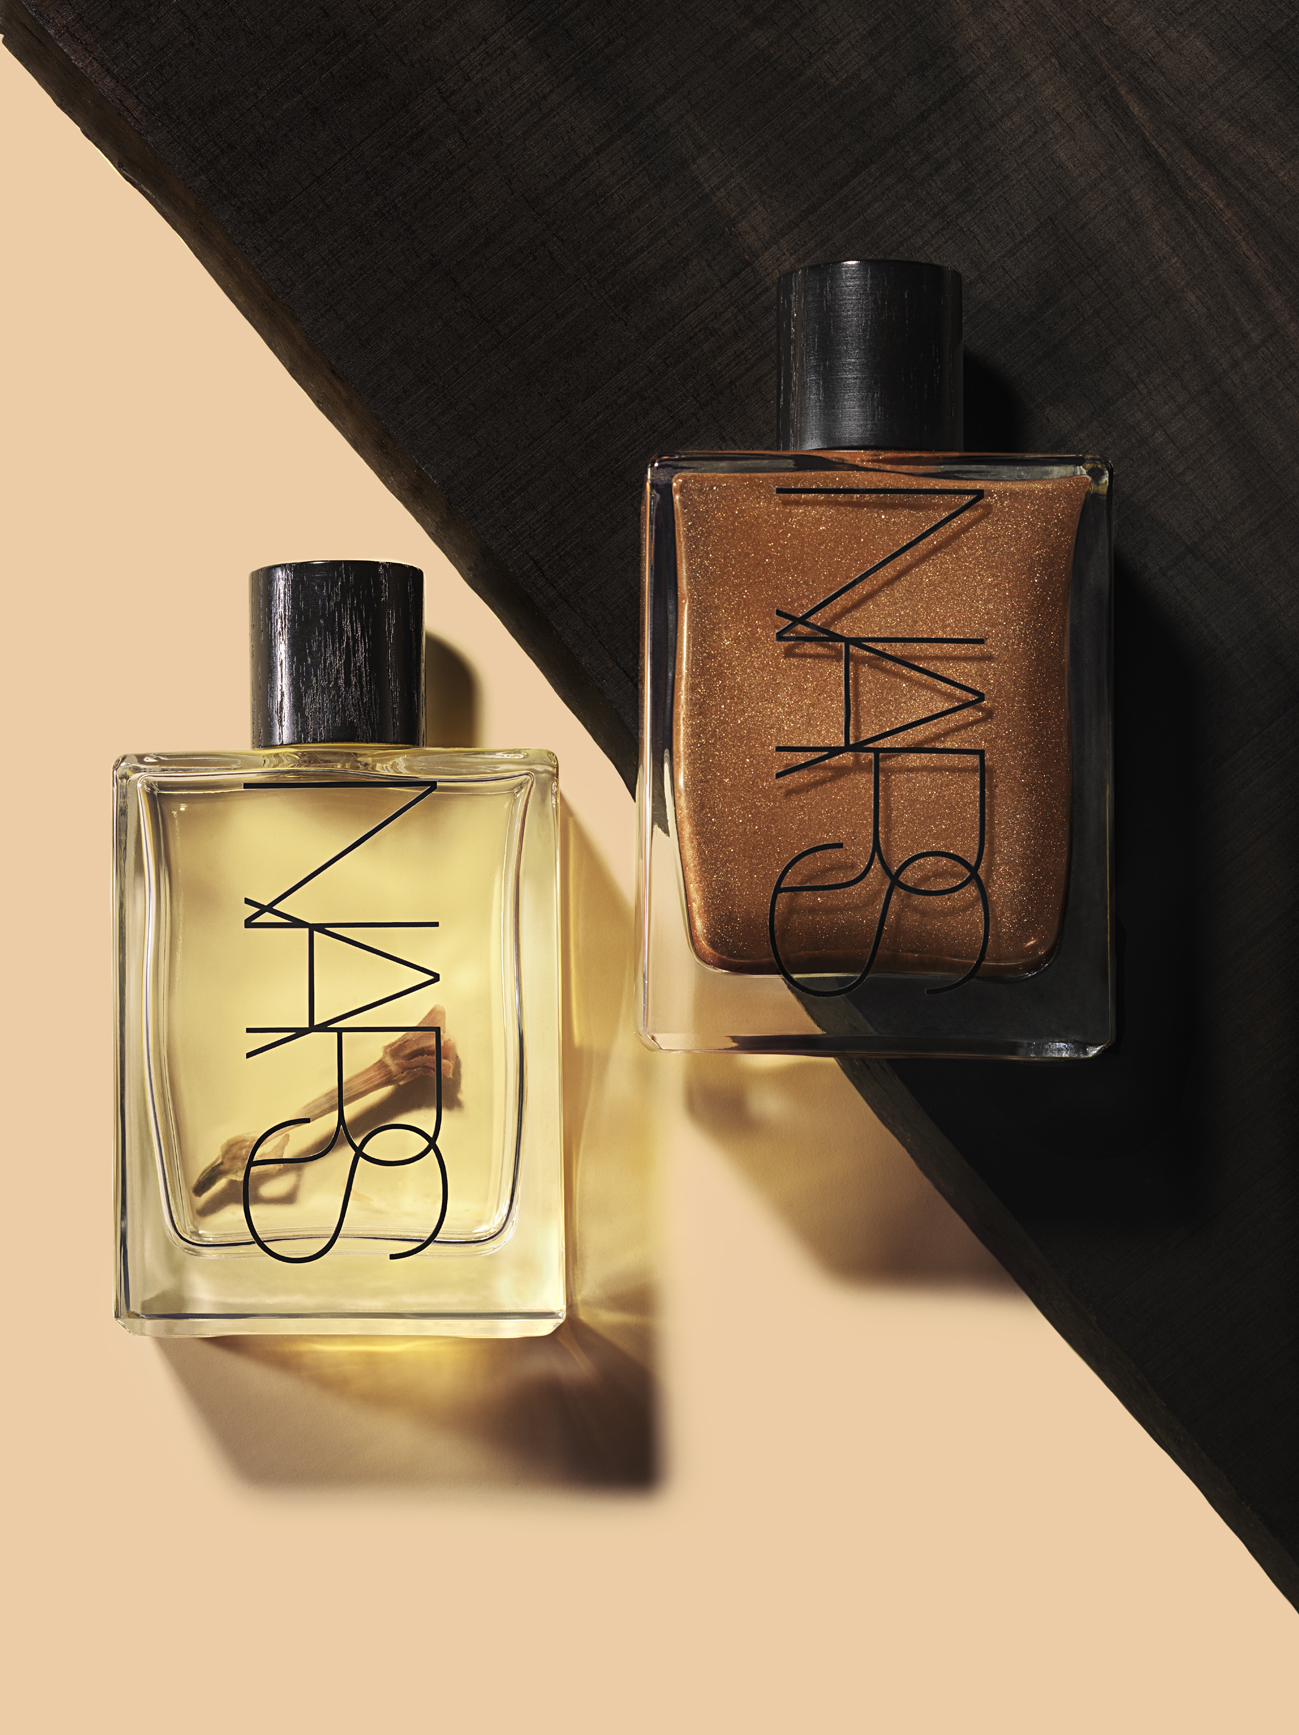 Nars cosmetics tahiti collection bronze by beauty blogger mademoiselle jules mlle